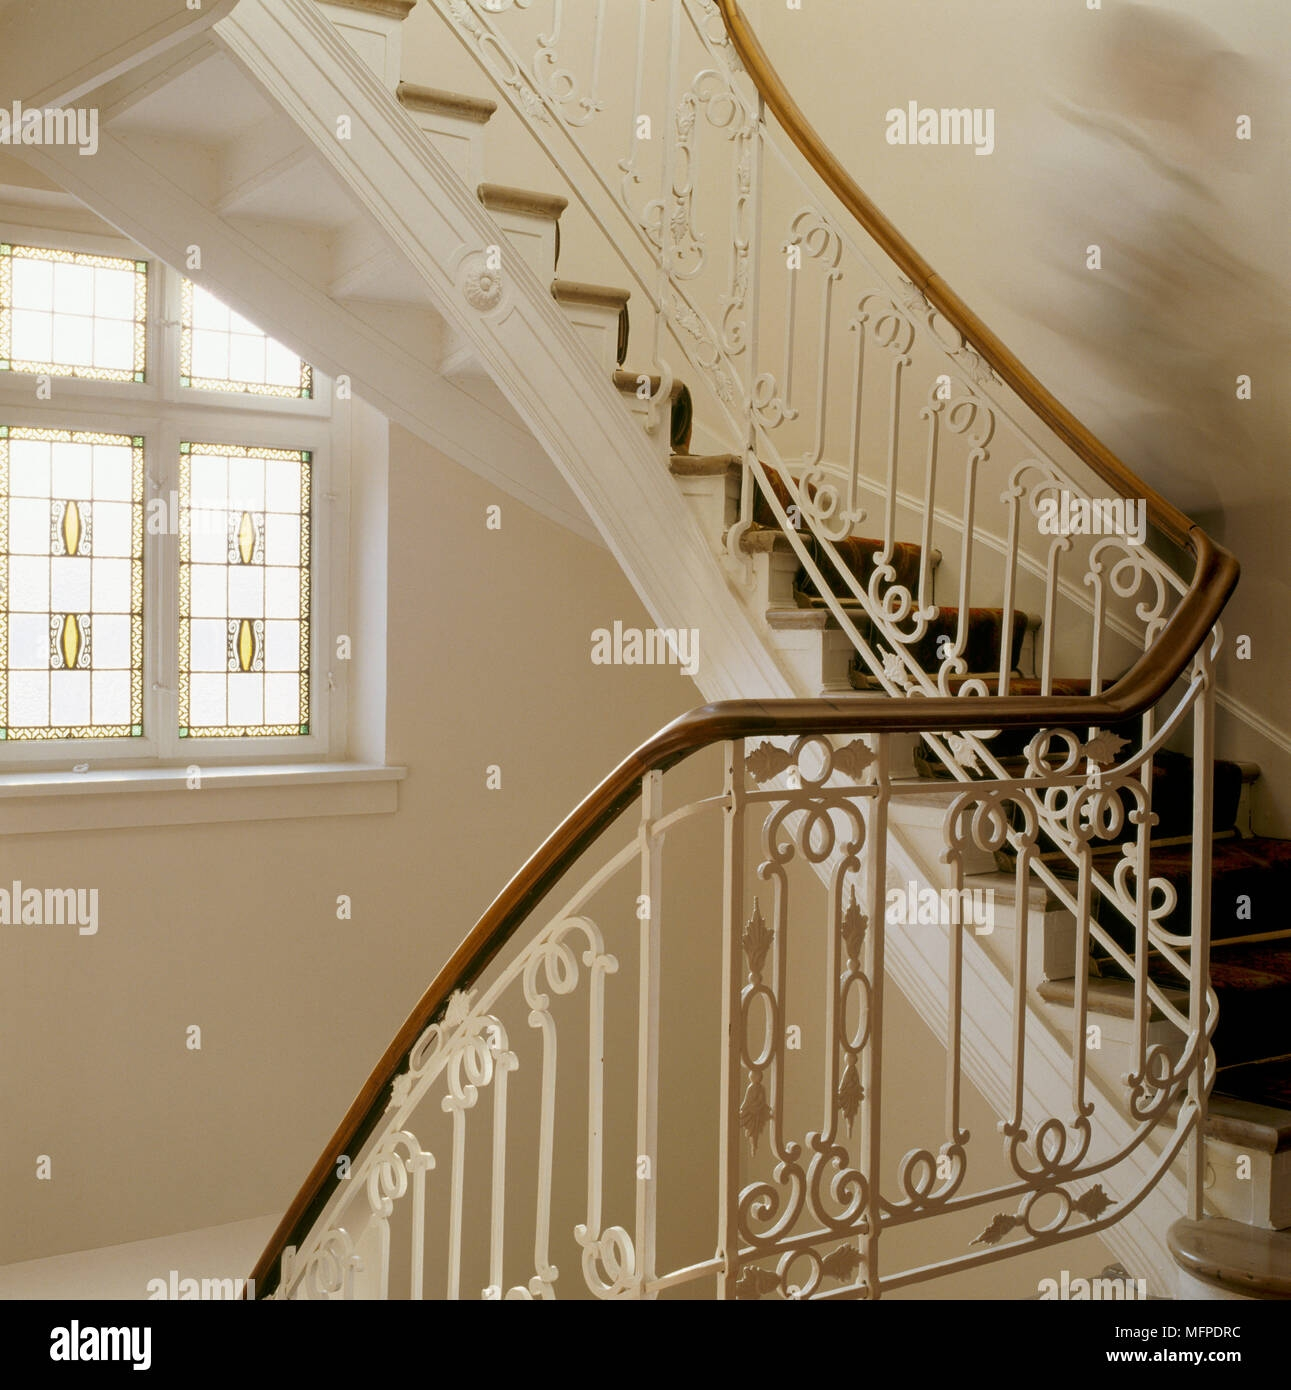 A Detail Of A Traditional Curving Staircase Decorative Wrought   Rod Iron Spindles For Staircase   Interior   Cast Iron   Square   Custom   Metal